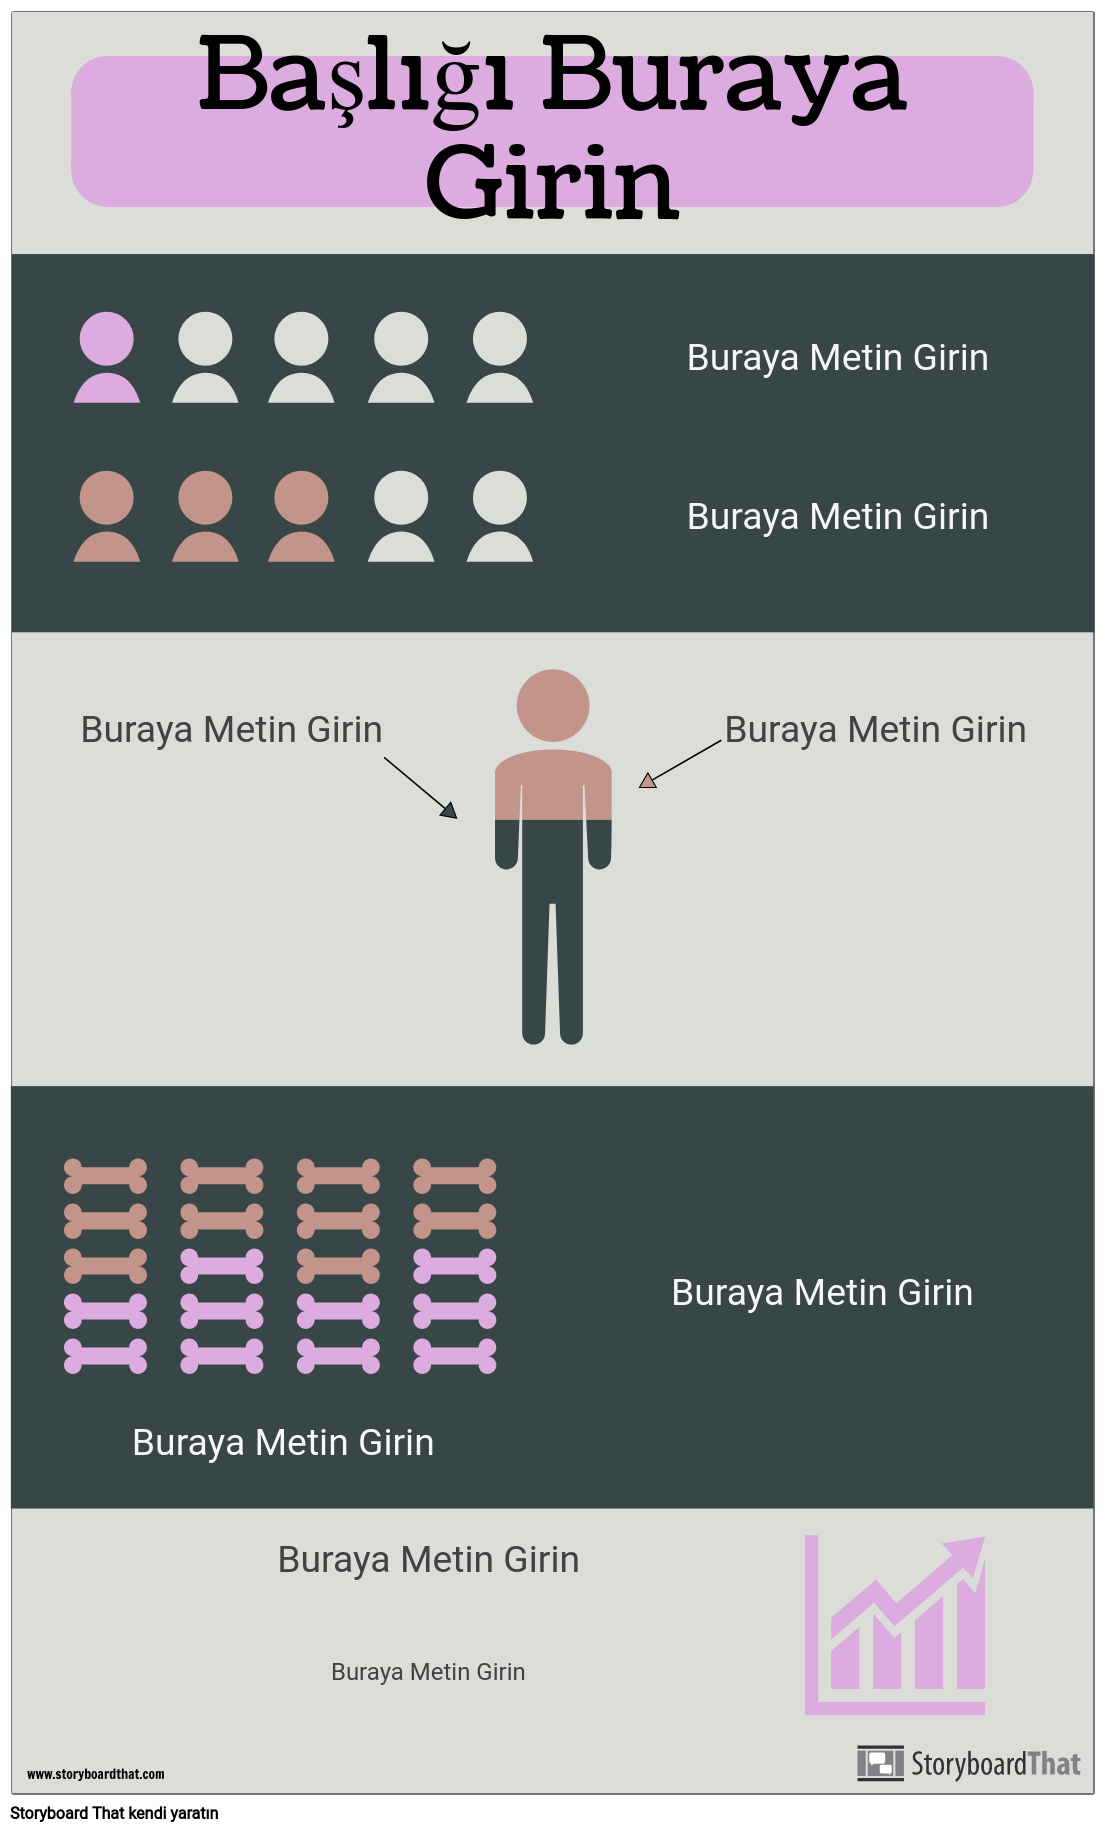 İstatistiksel Infographic